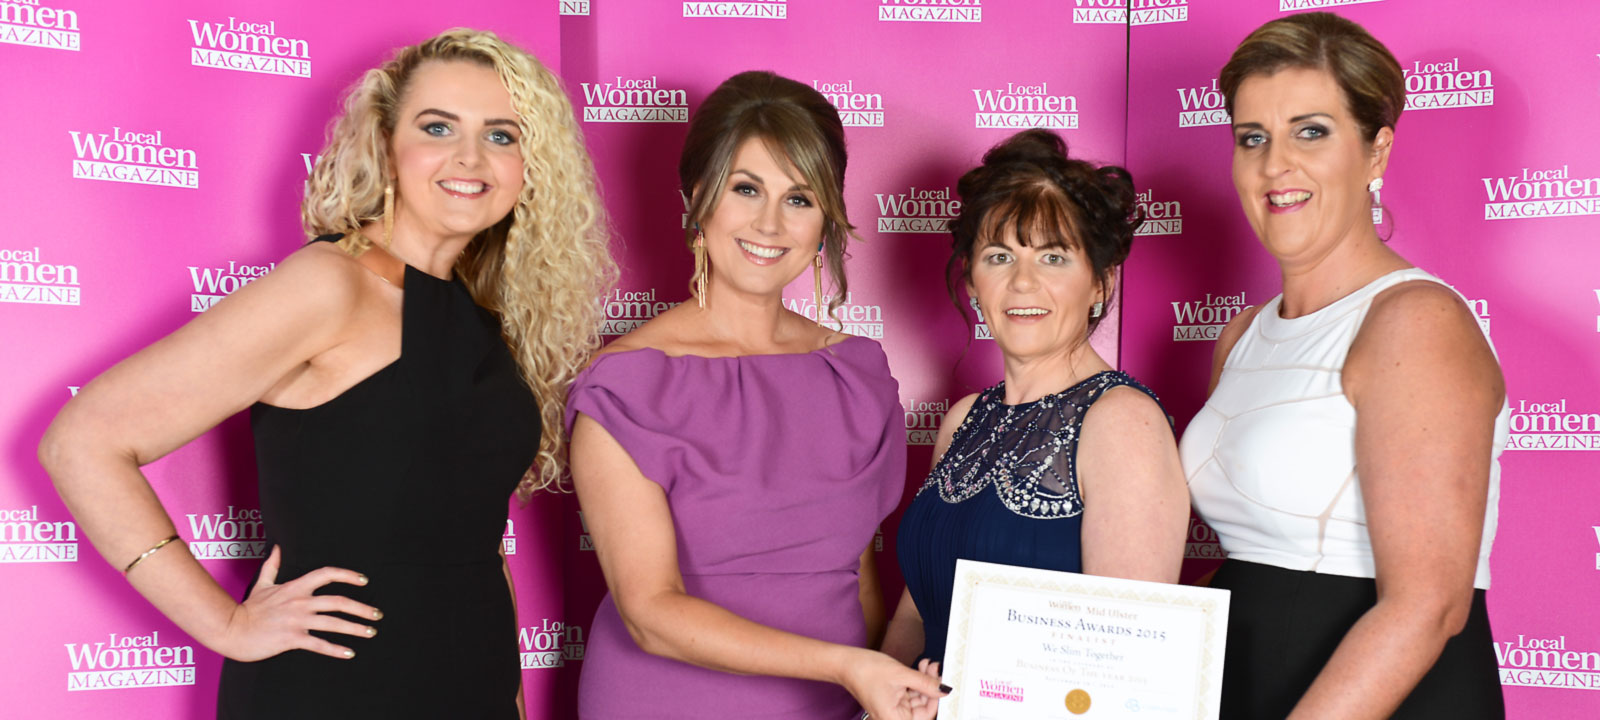 WST Finalist in Business of the Year Award by Local Woman Magazine